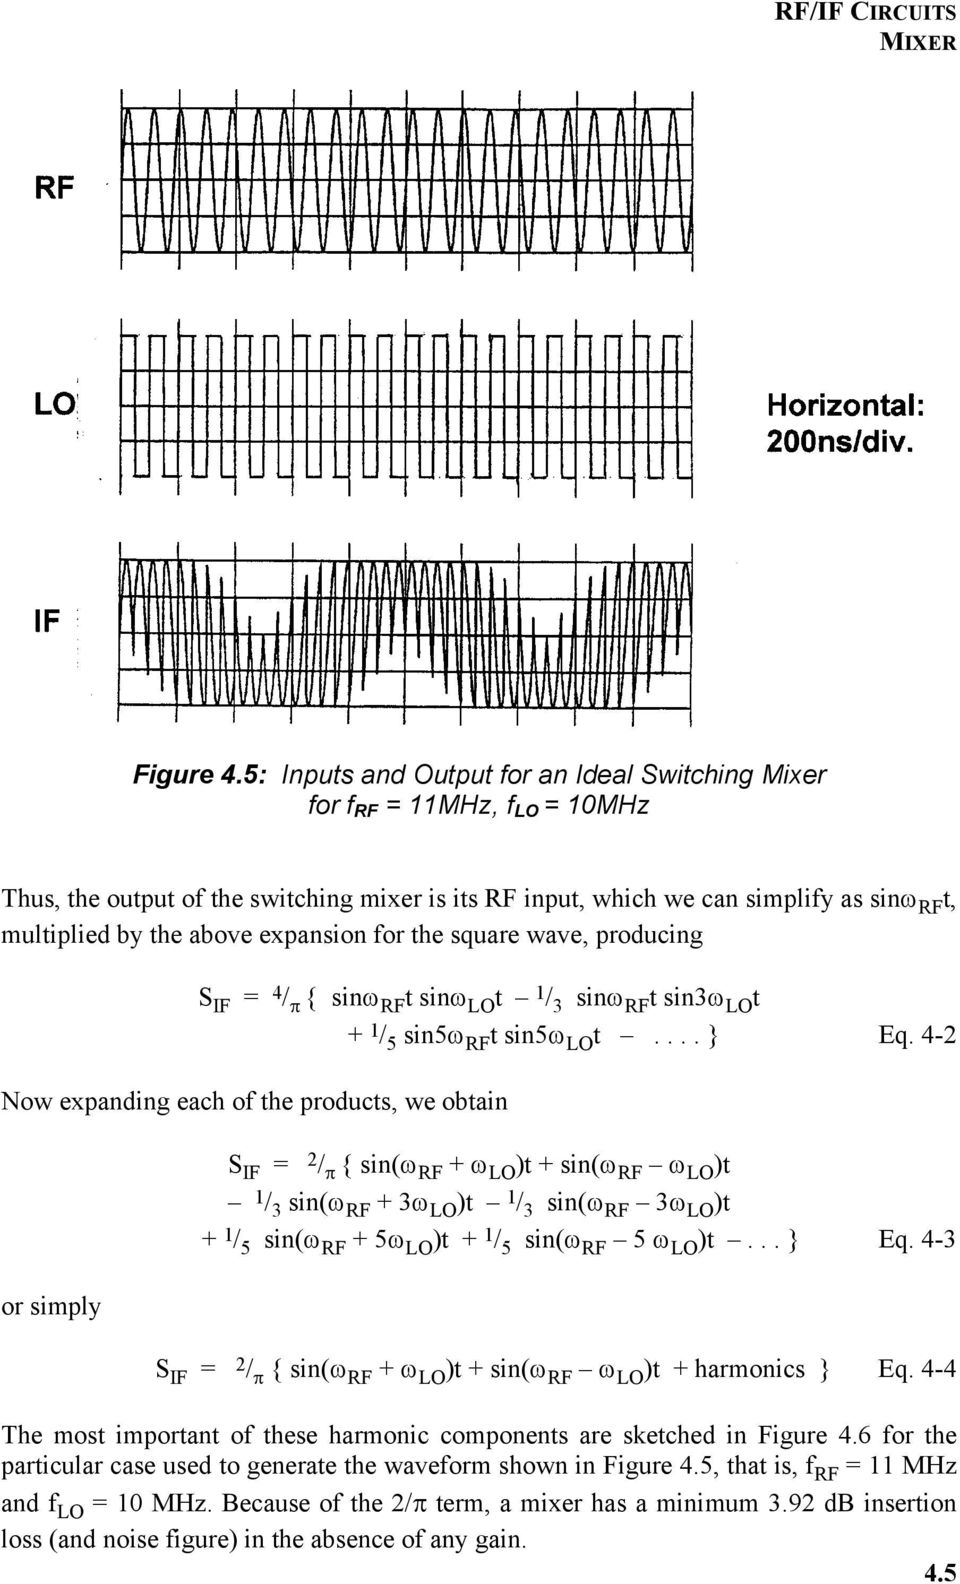 Chapter 4 Rf If Circuits Pdf 10 Mhz Variable Frequency Oscillator Signalprocessing Circuit Expansion For The Square Wave Producing S Sin